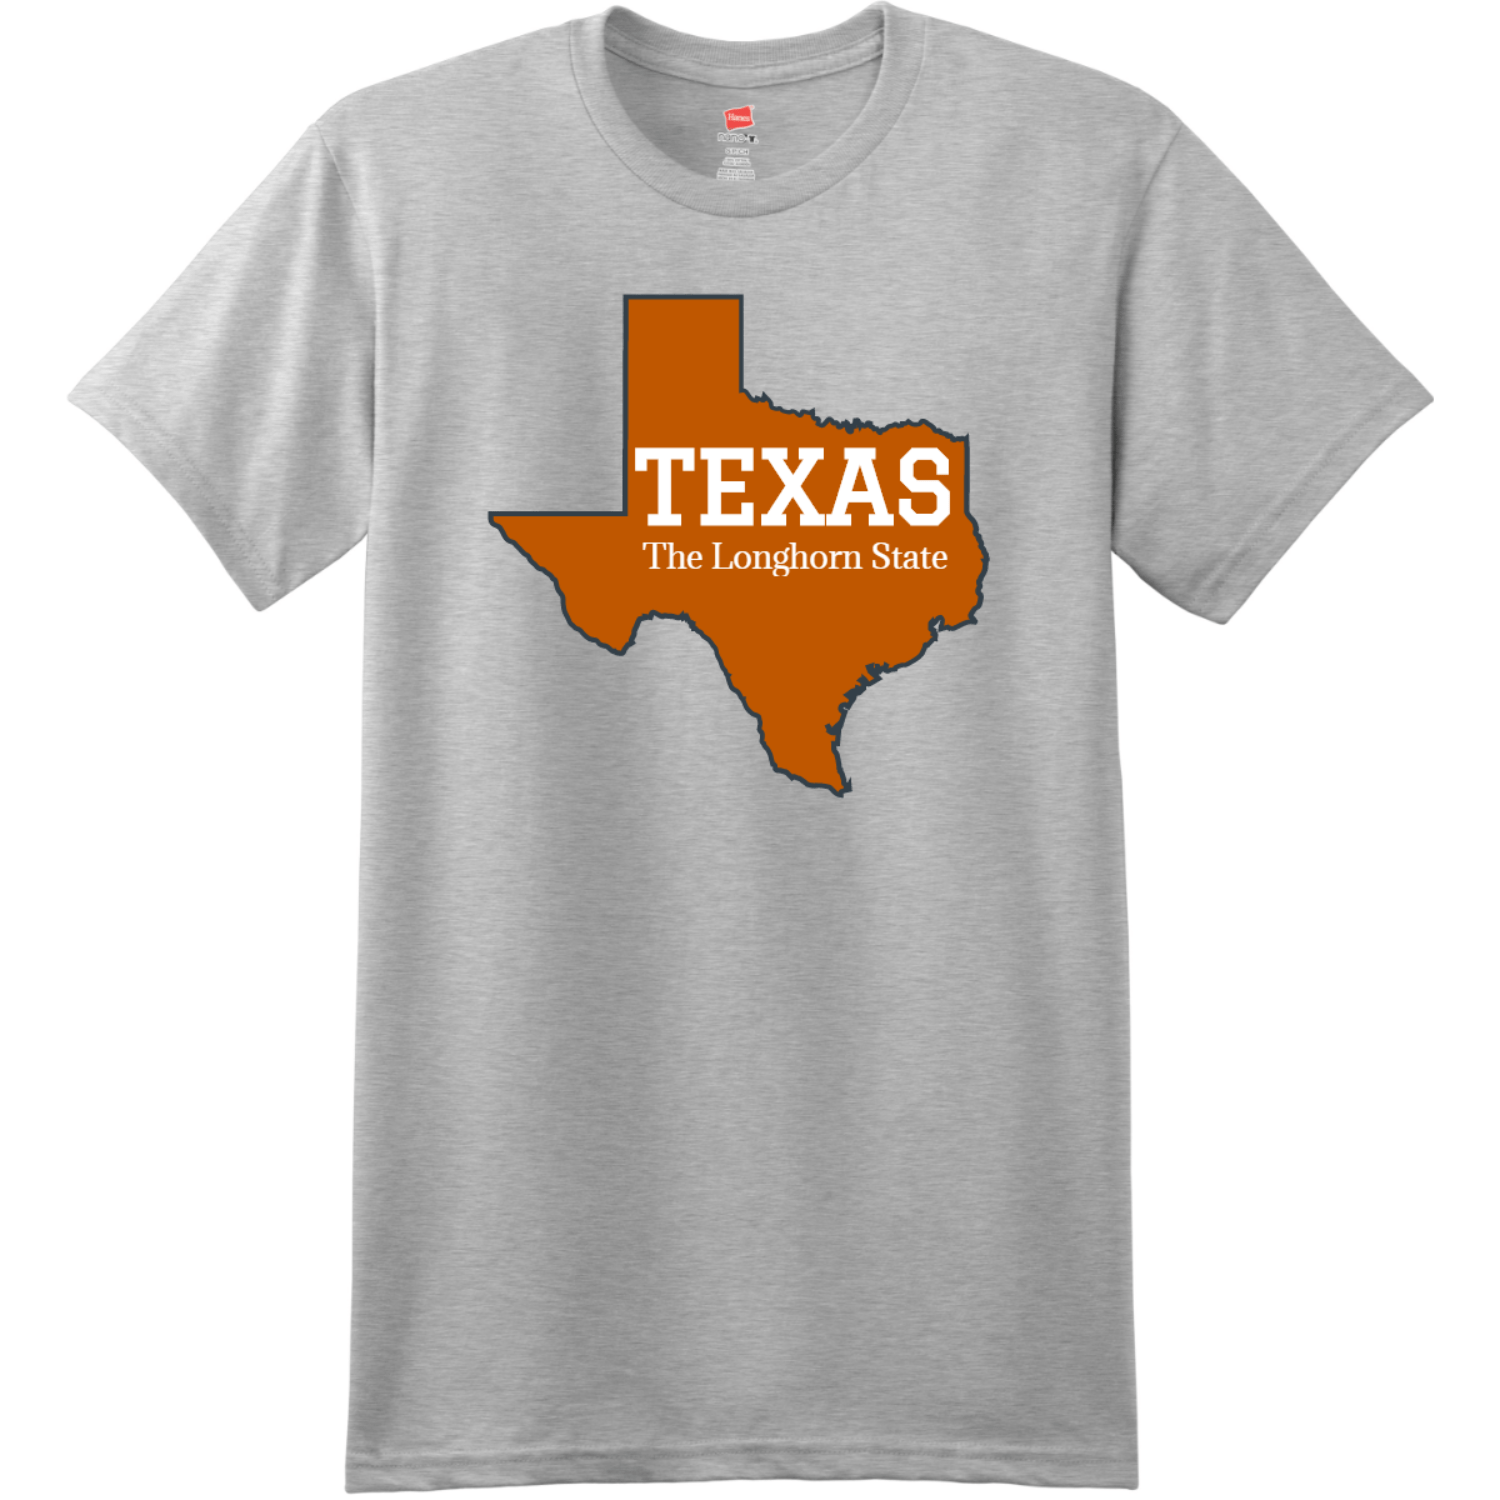 Texas The Longhorn State T Shirt Ash Hanes Nano 4980 Ringspun Cotton T Shirt